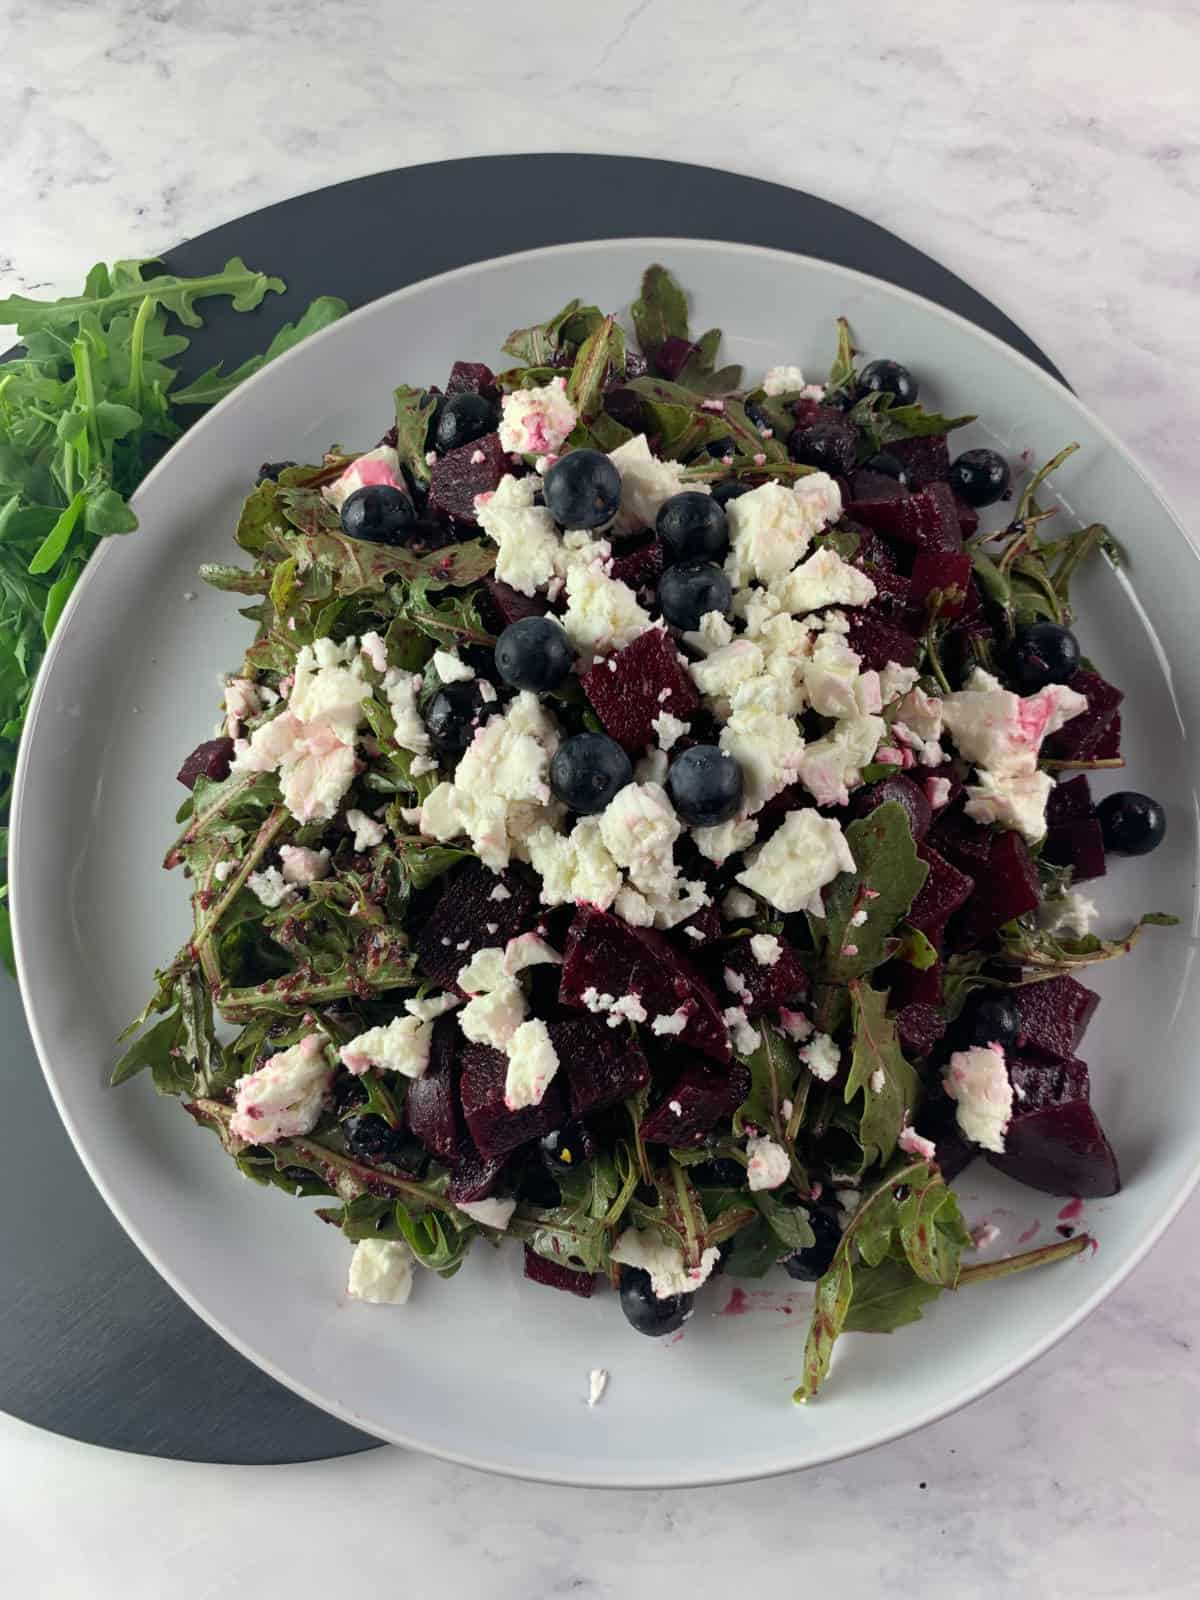 Red white and blue salad in portrait with beets, blueberries, feta and arugula